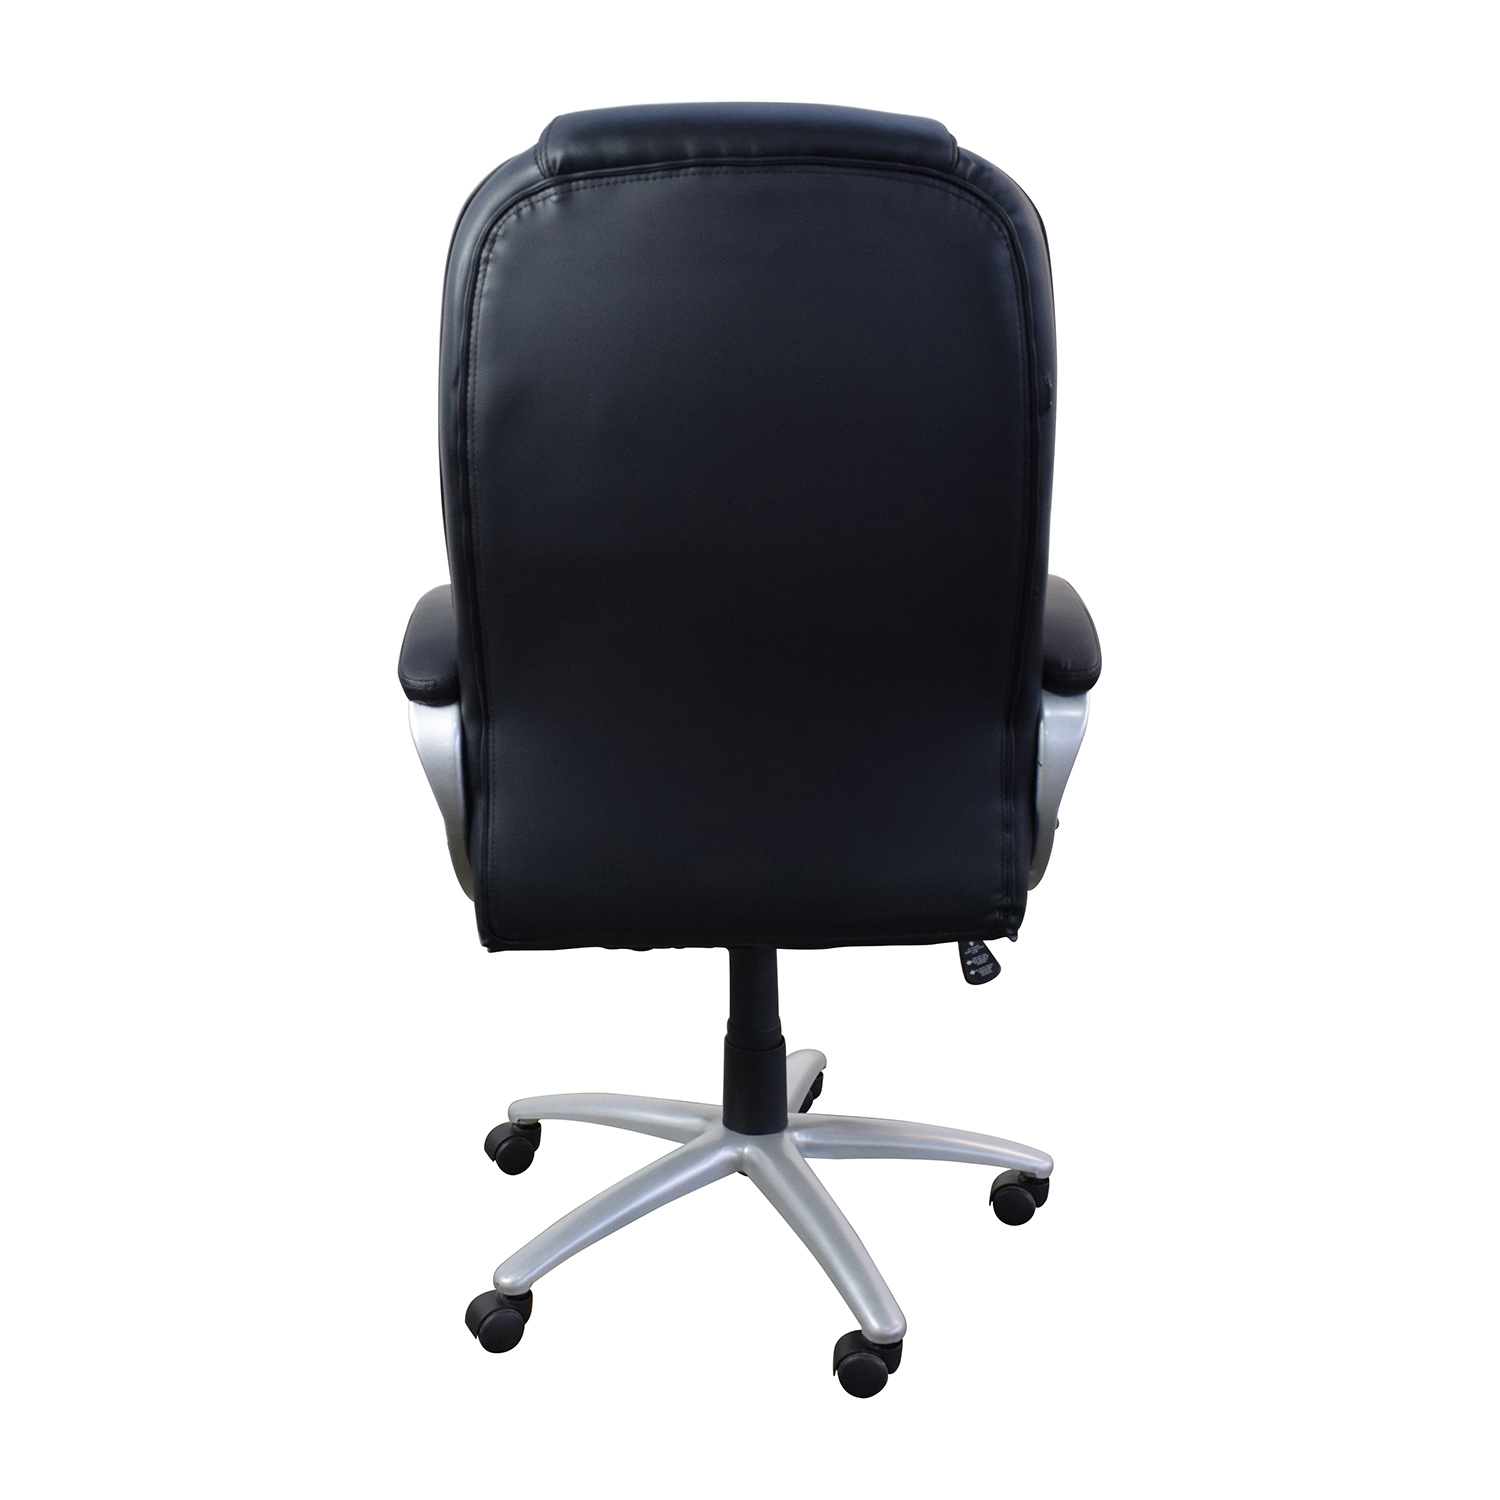 57 OFF  Black Leather Executive Office Chair  Chairs